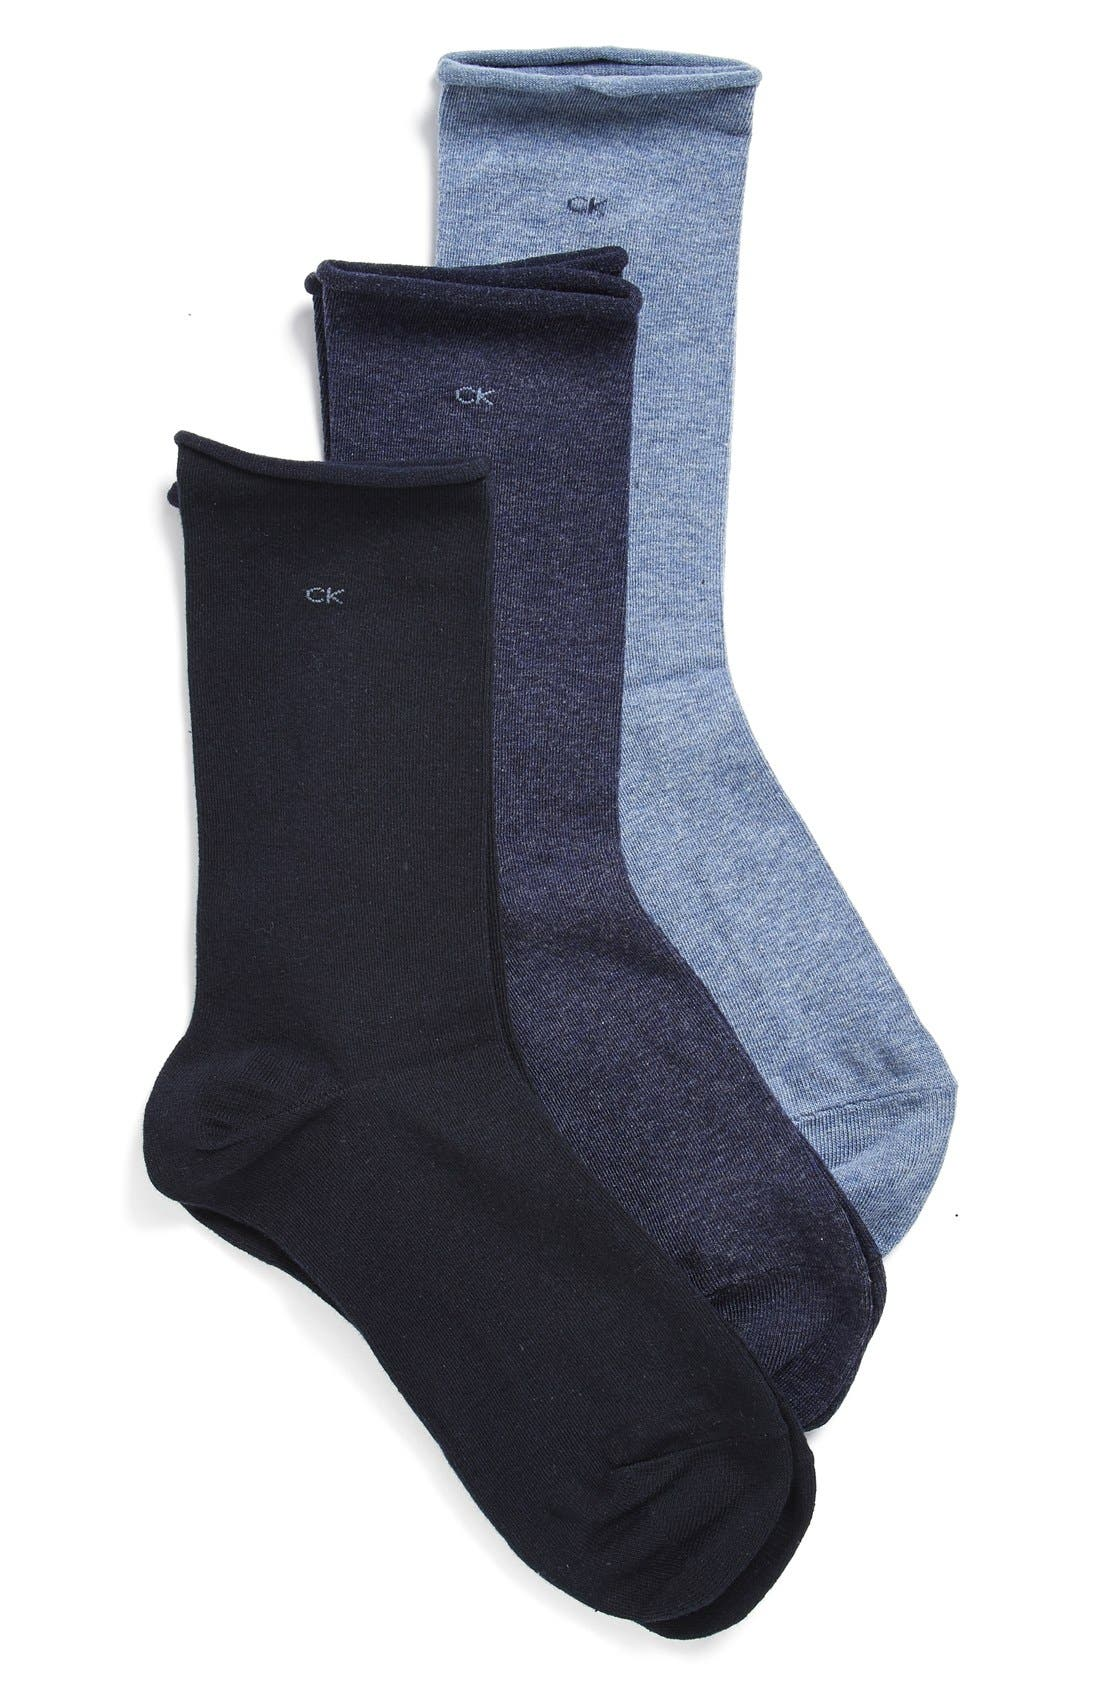 Alternate Image 1 Selected - Calvin Klein Roll Top Crew Socks (3-Pack)